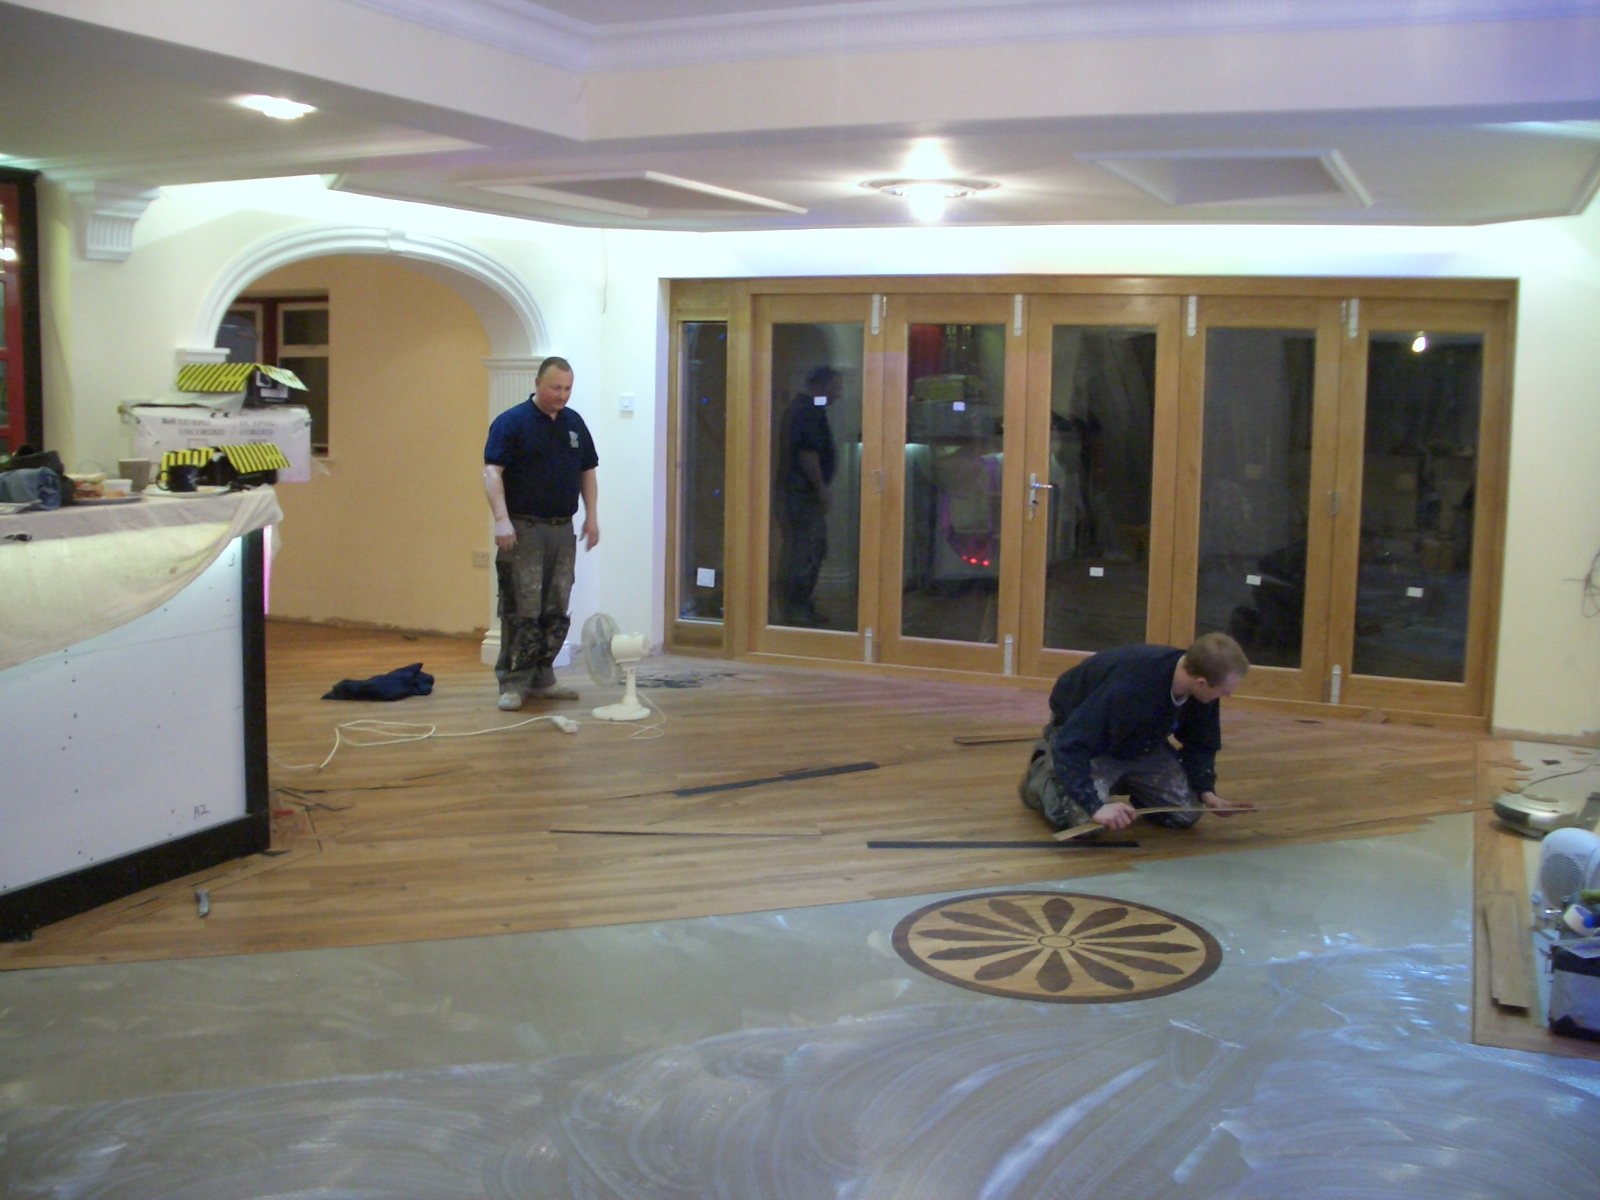 New flooring and bi-folding doors